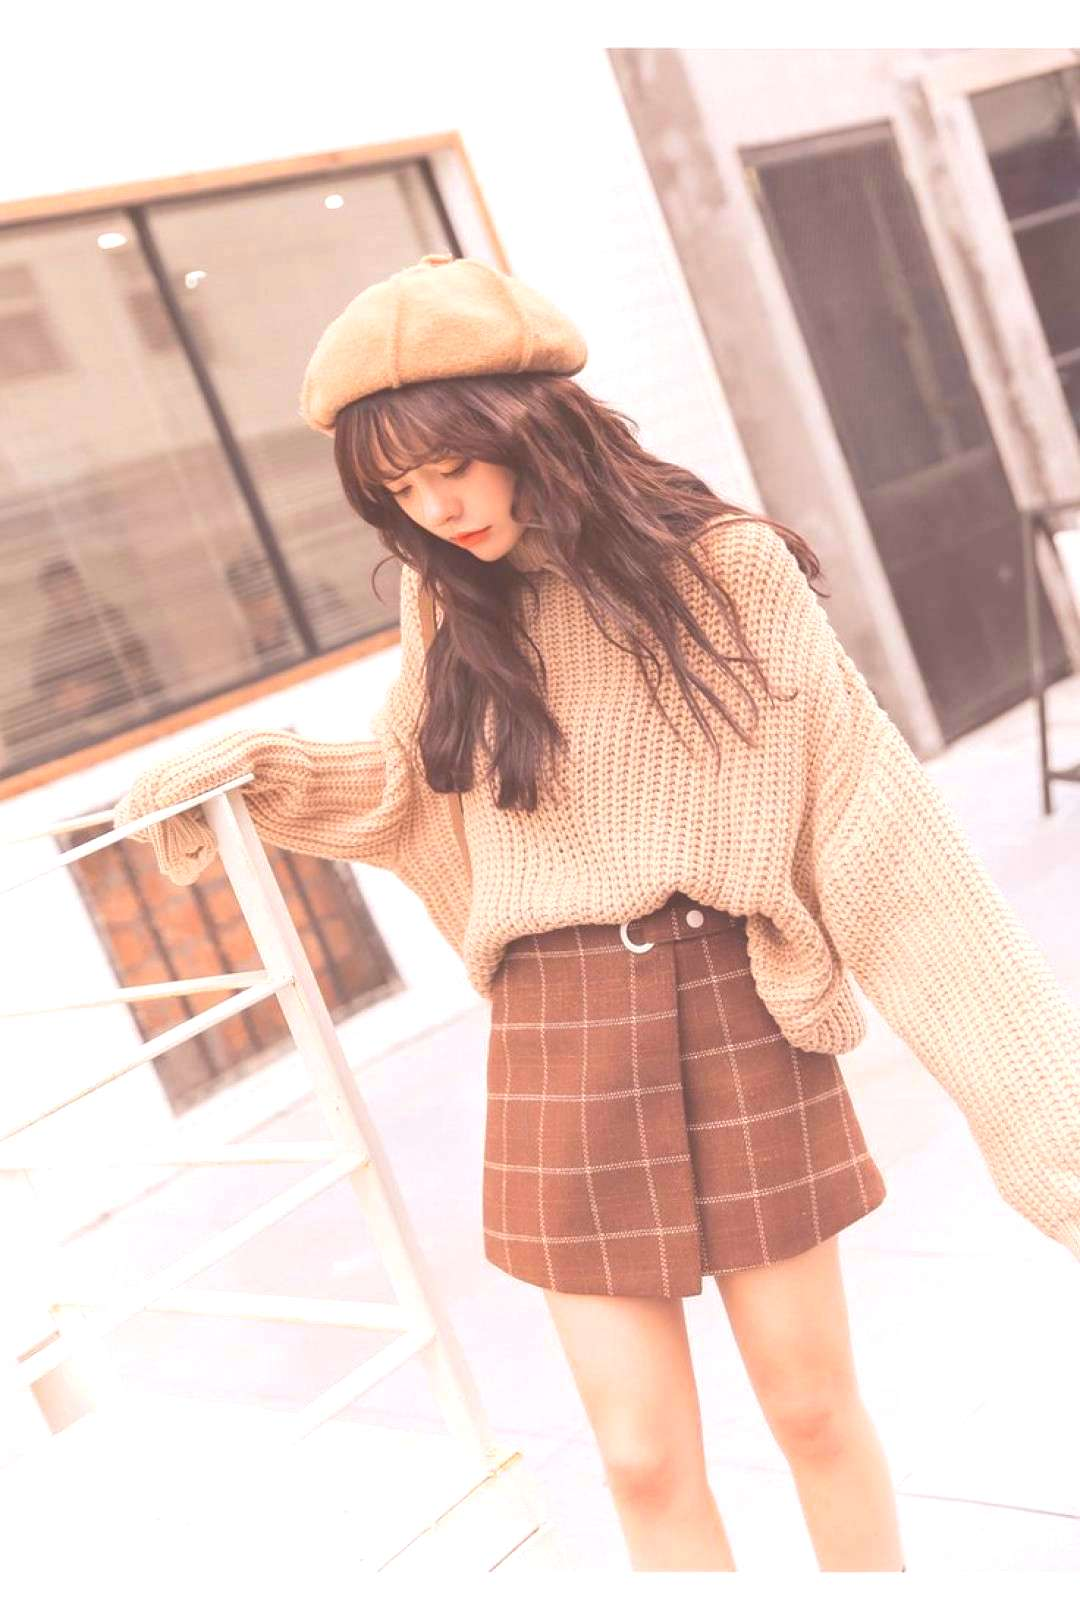 Woolen Plaid Harajuku Kawaii Retro Skirt Autumn and Winter -You can find Kawaii fashion and more on